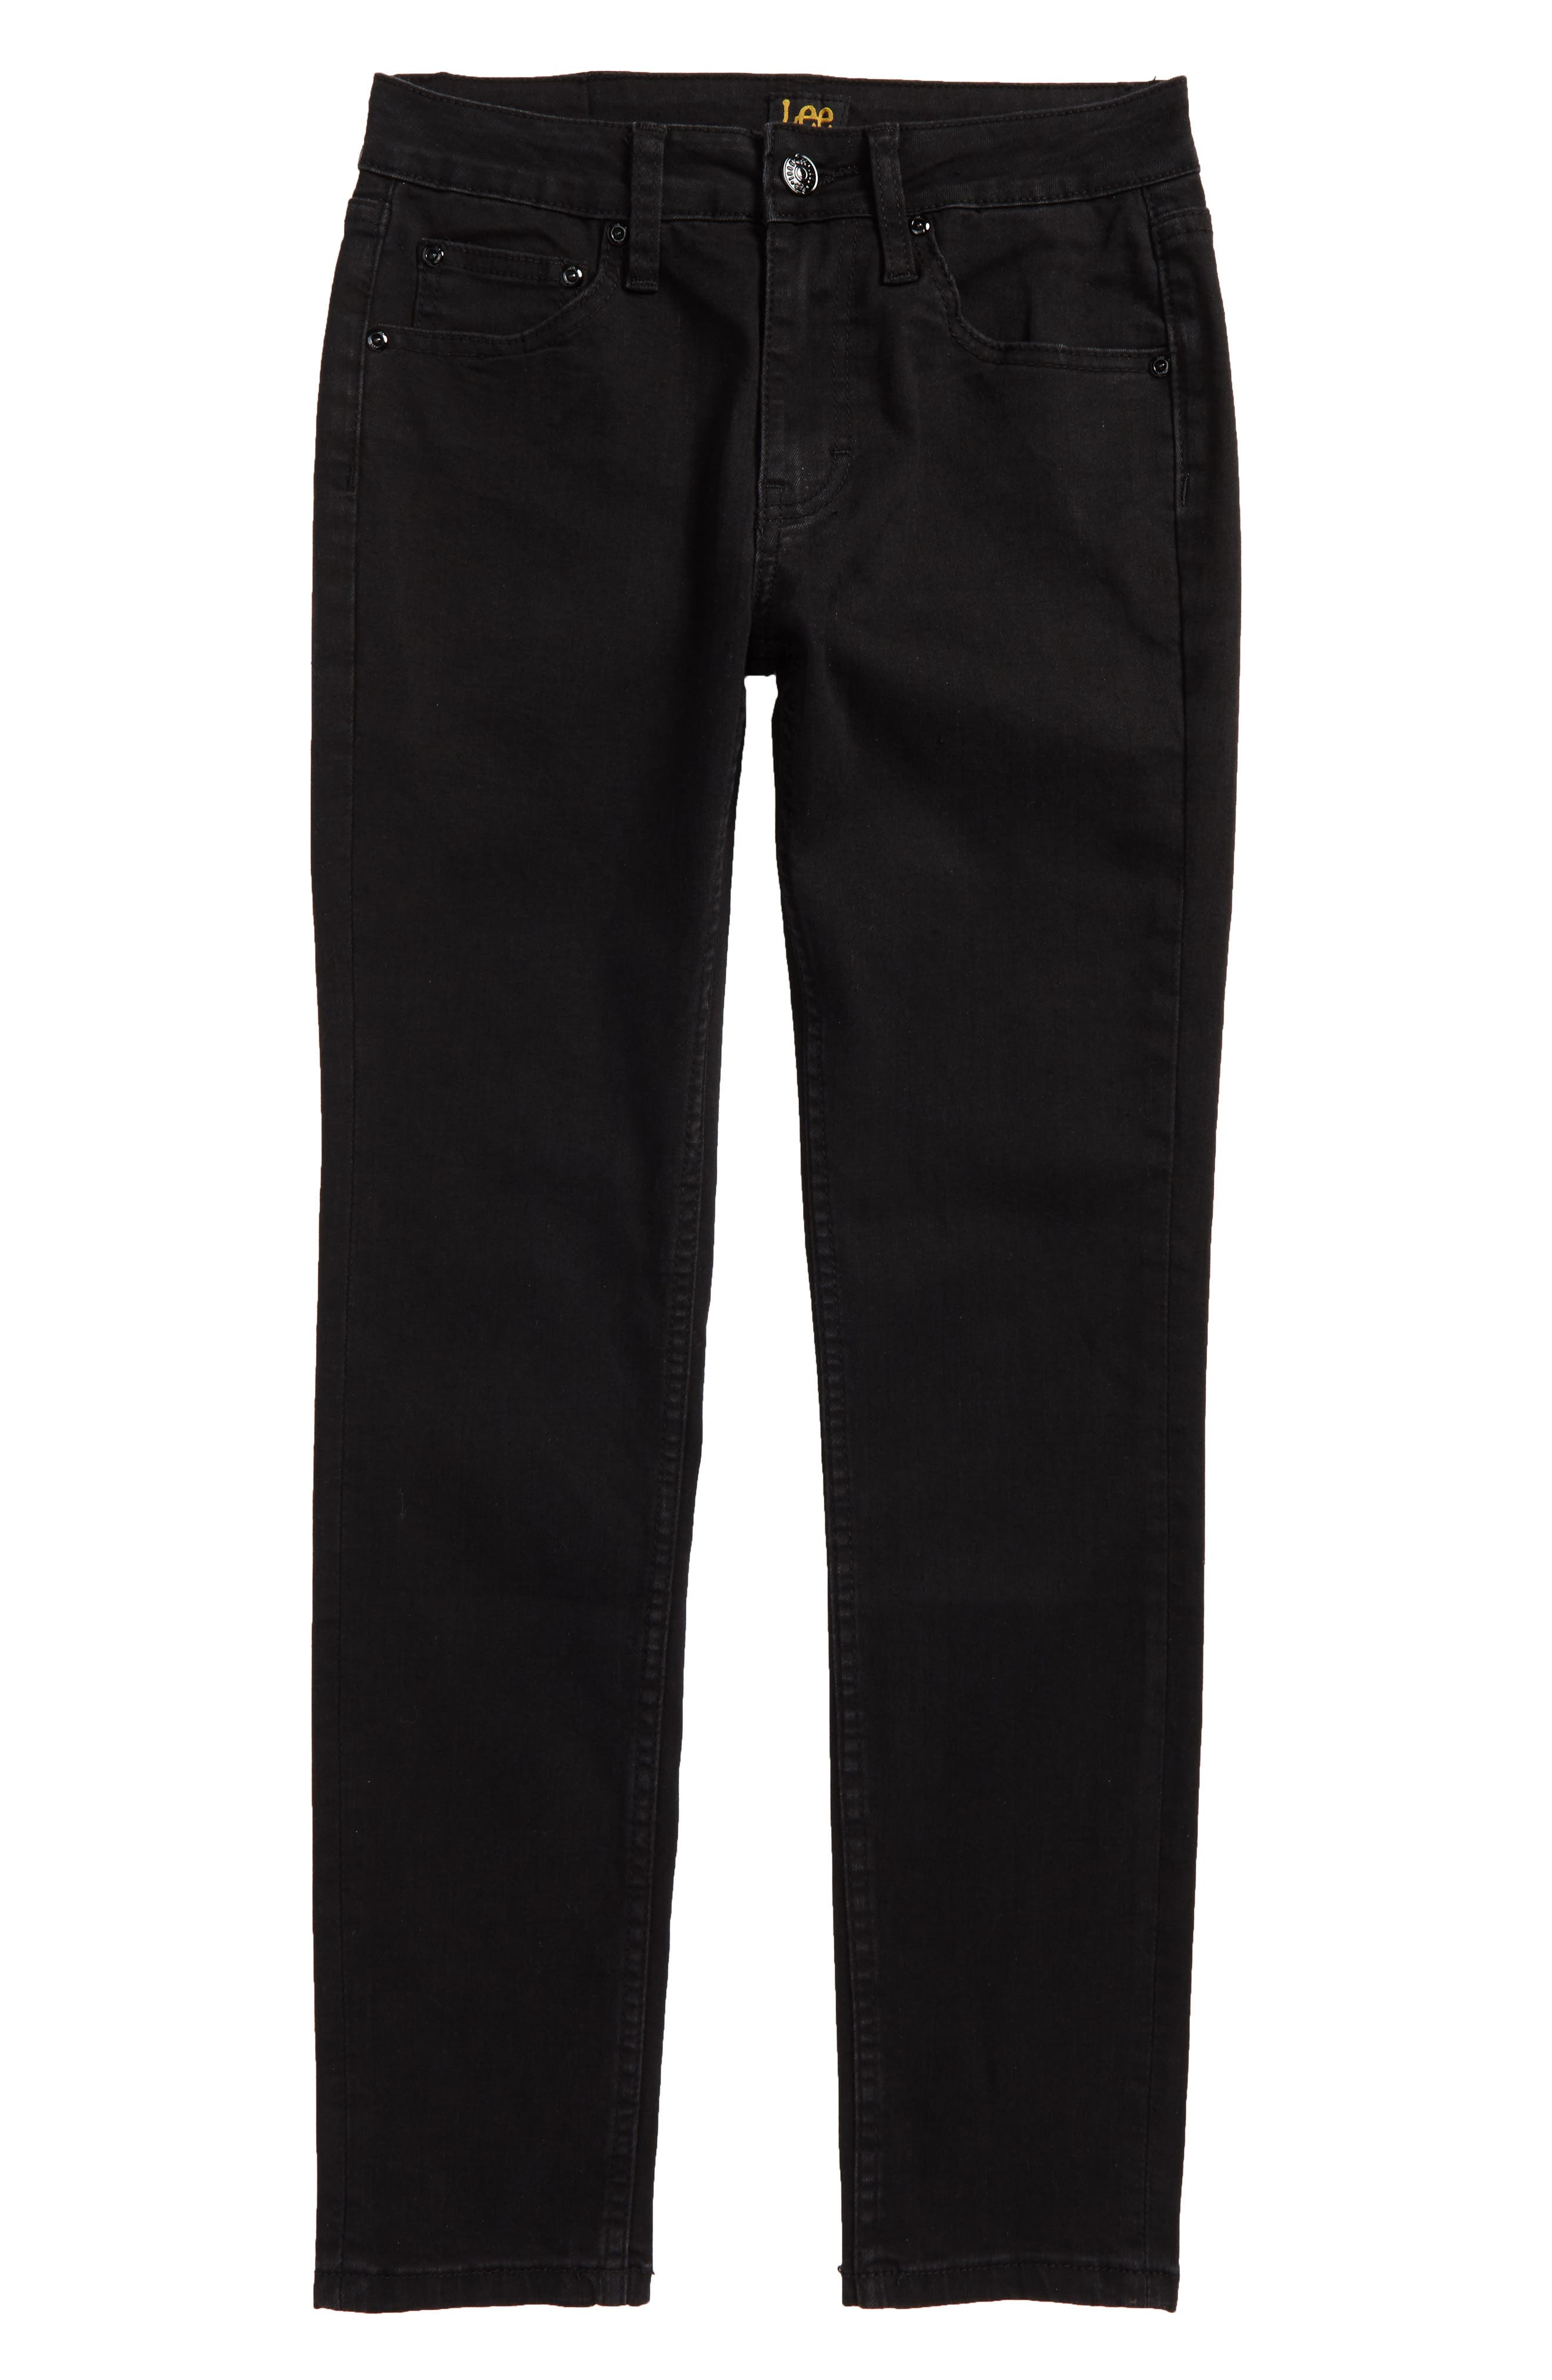 Stretch Skinny Jeans,                         Main,                         color, 011